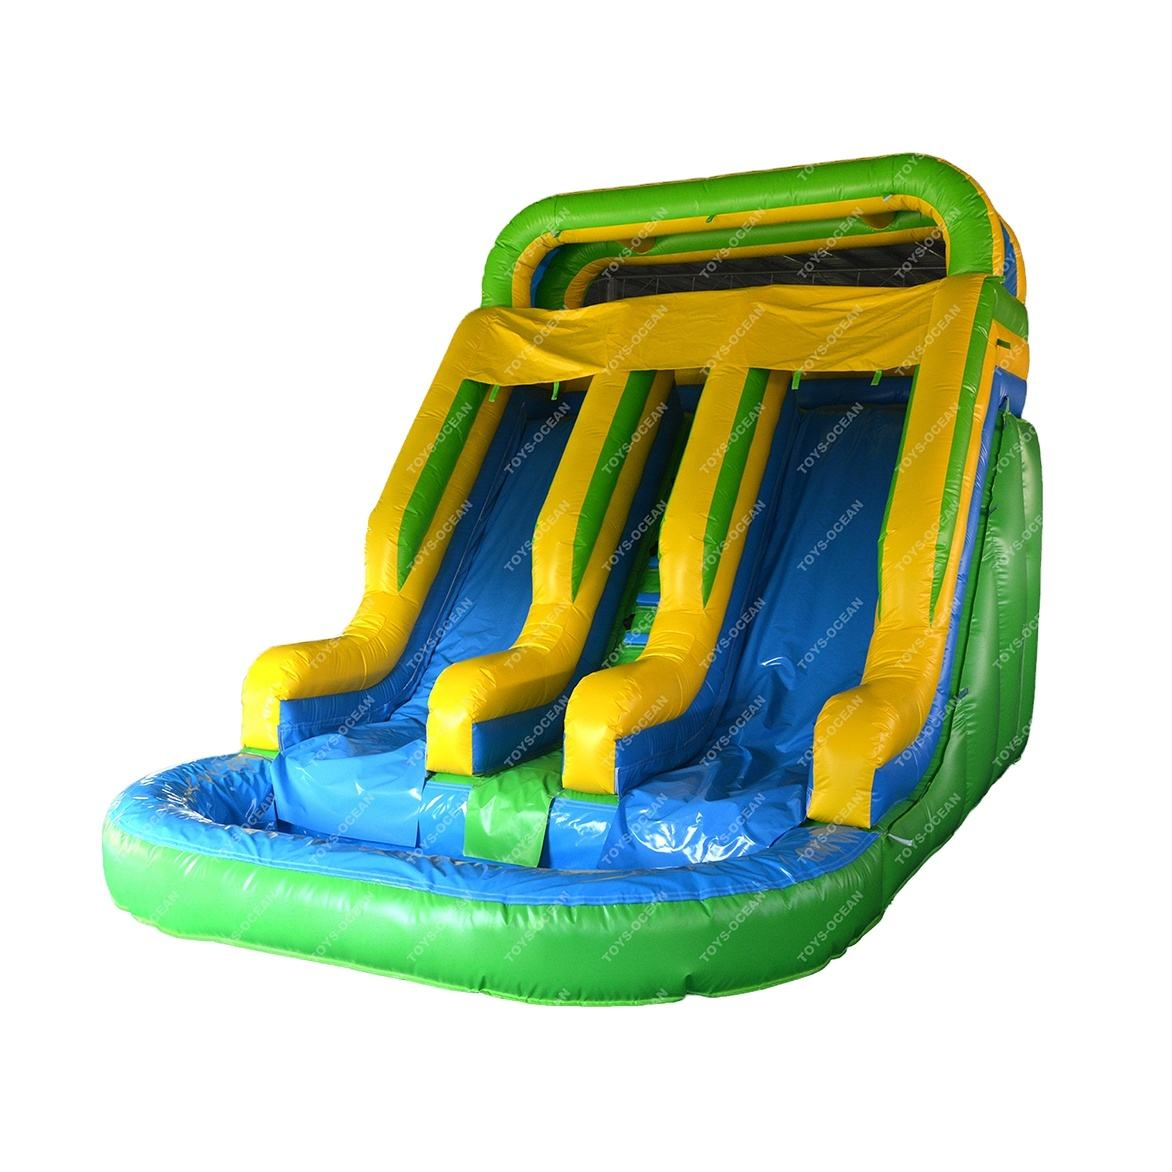 2020 new arrival Blue Adults and Kids Inflatable water slide with big swimming pool for rental or sale